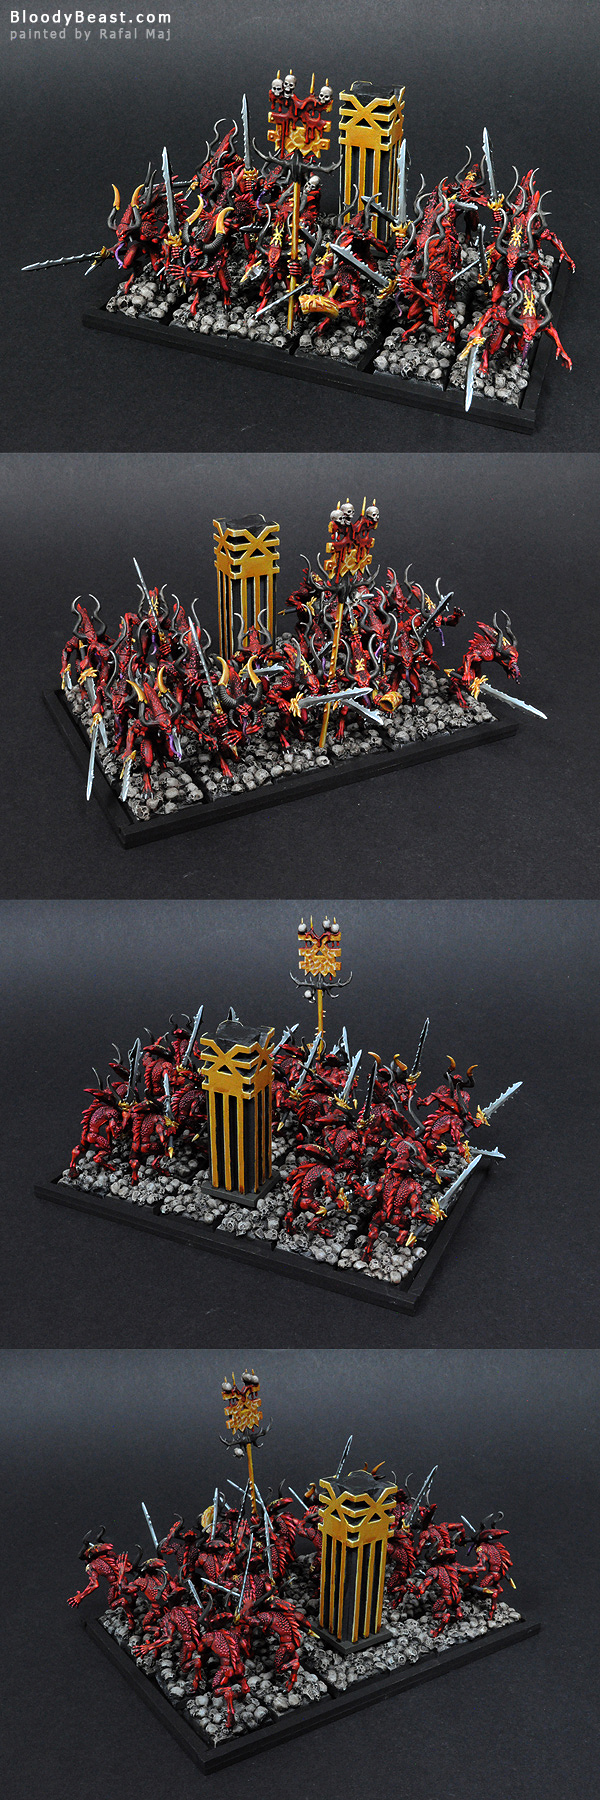 Bloodletters of Khorne painted by Rafal Maj (BloodyBeast.com)